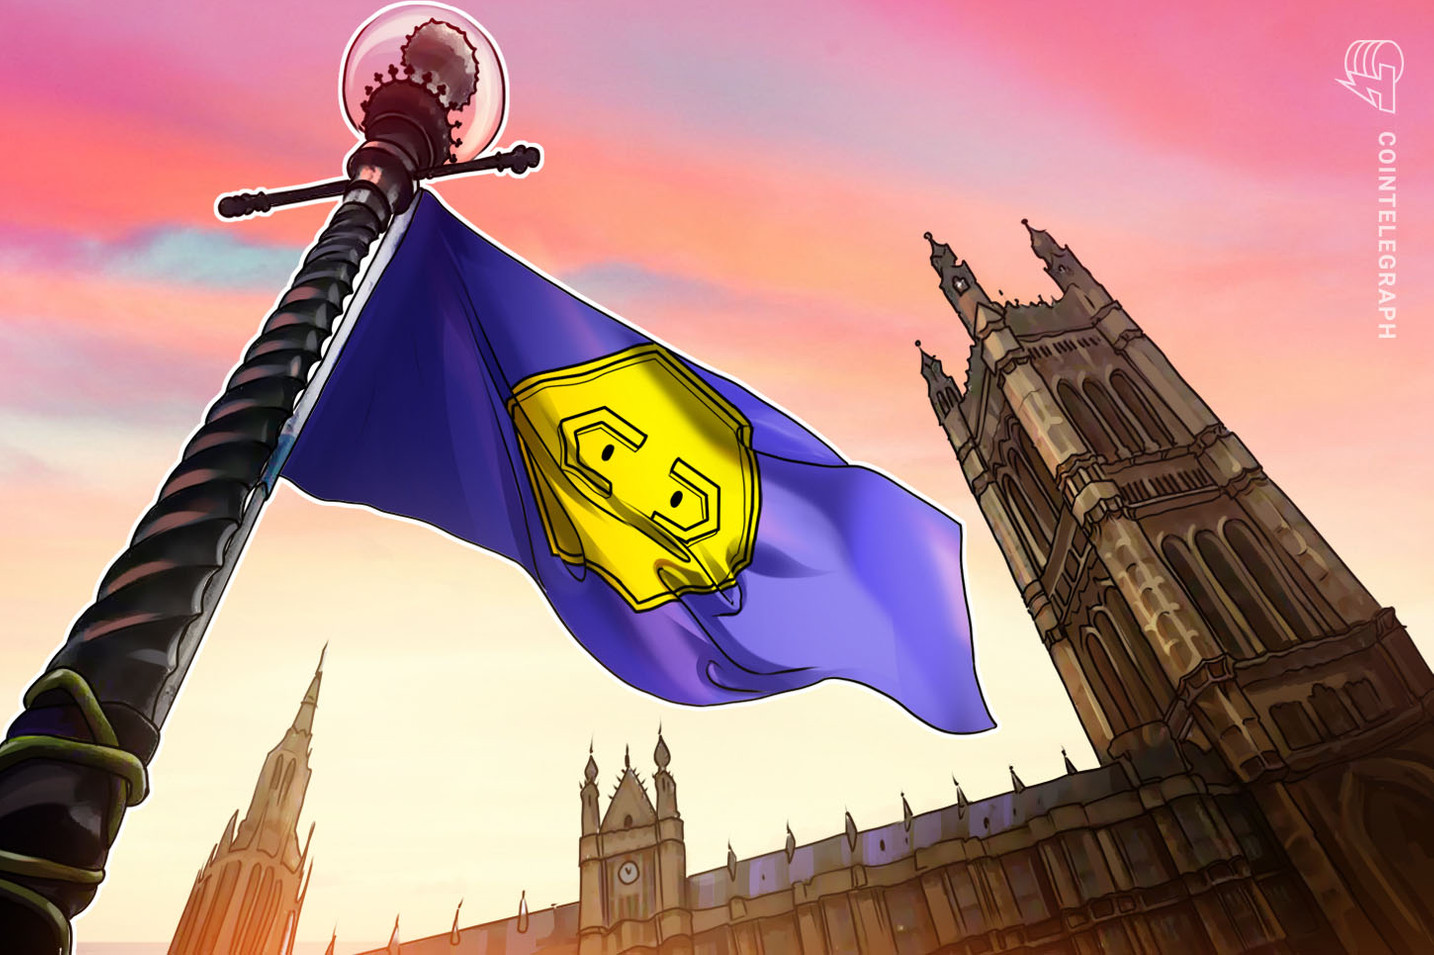 Major Exchanges Urge UK Regulator to Not Restrict Crypto Derivatives